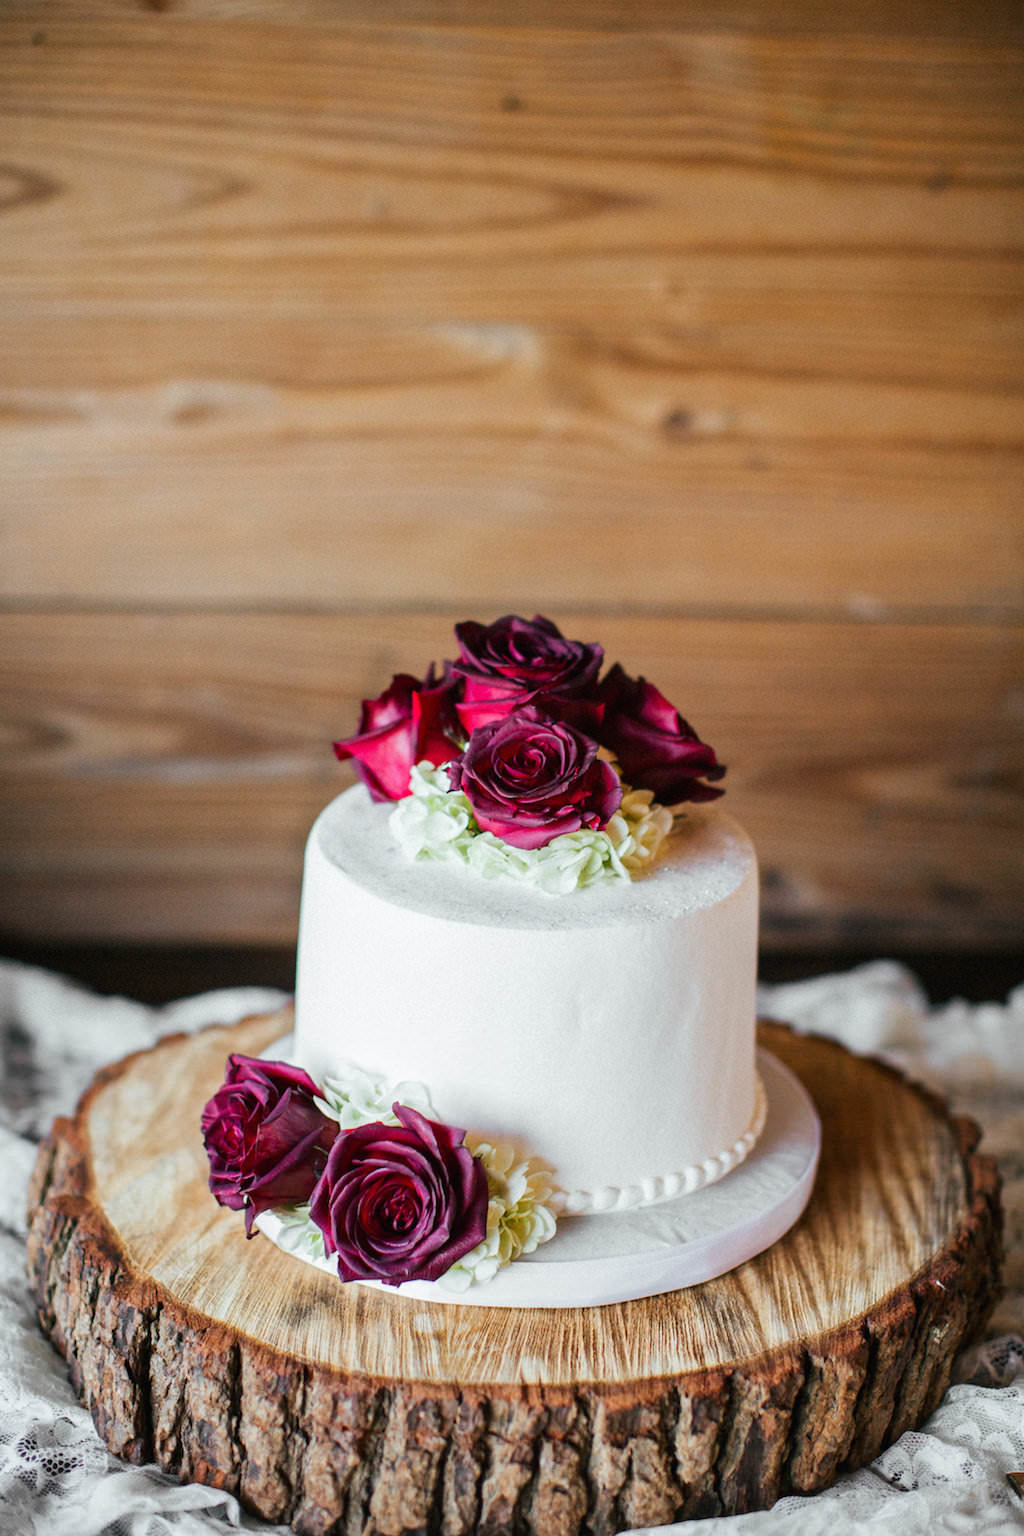 Round Single Tier Wedding Cake With Burgundy Roses On Natural Wood